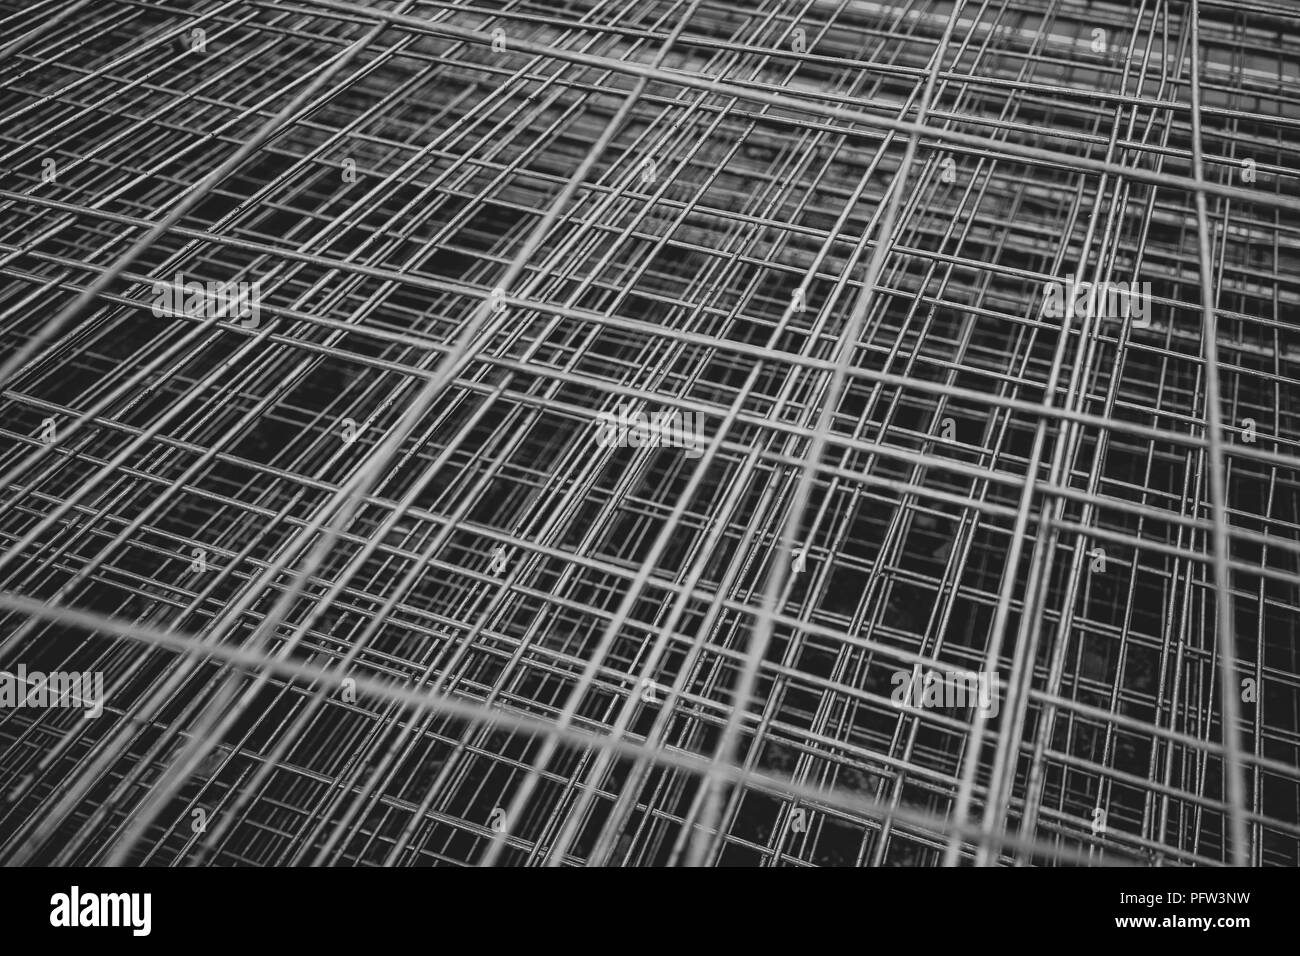 Fence made of wire folded from above - Stock Image